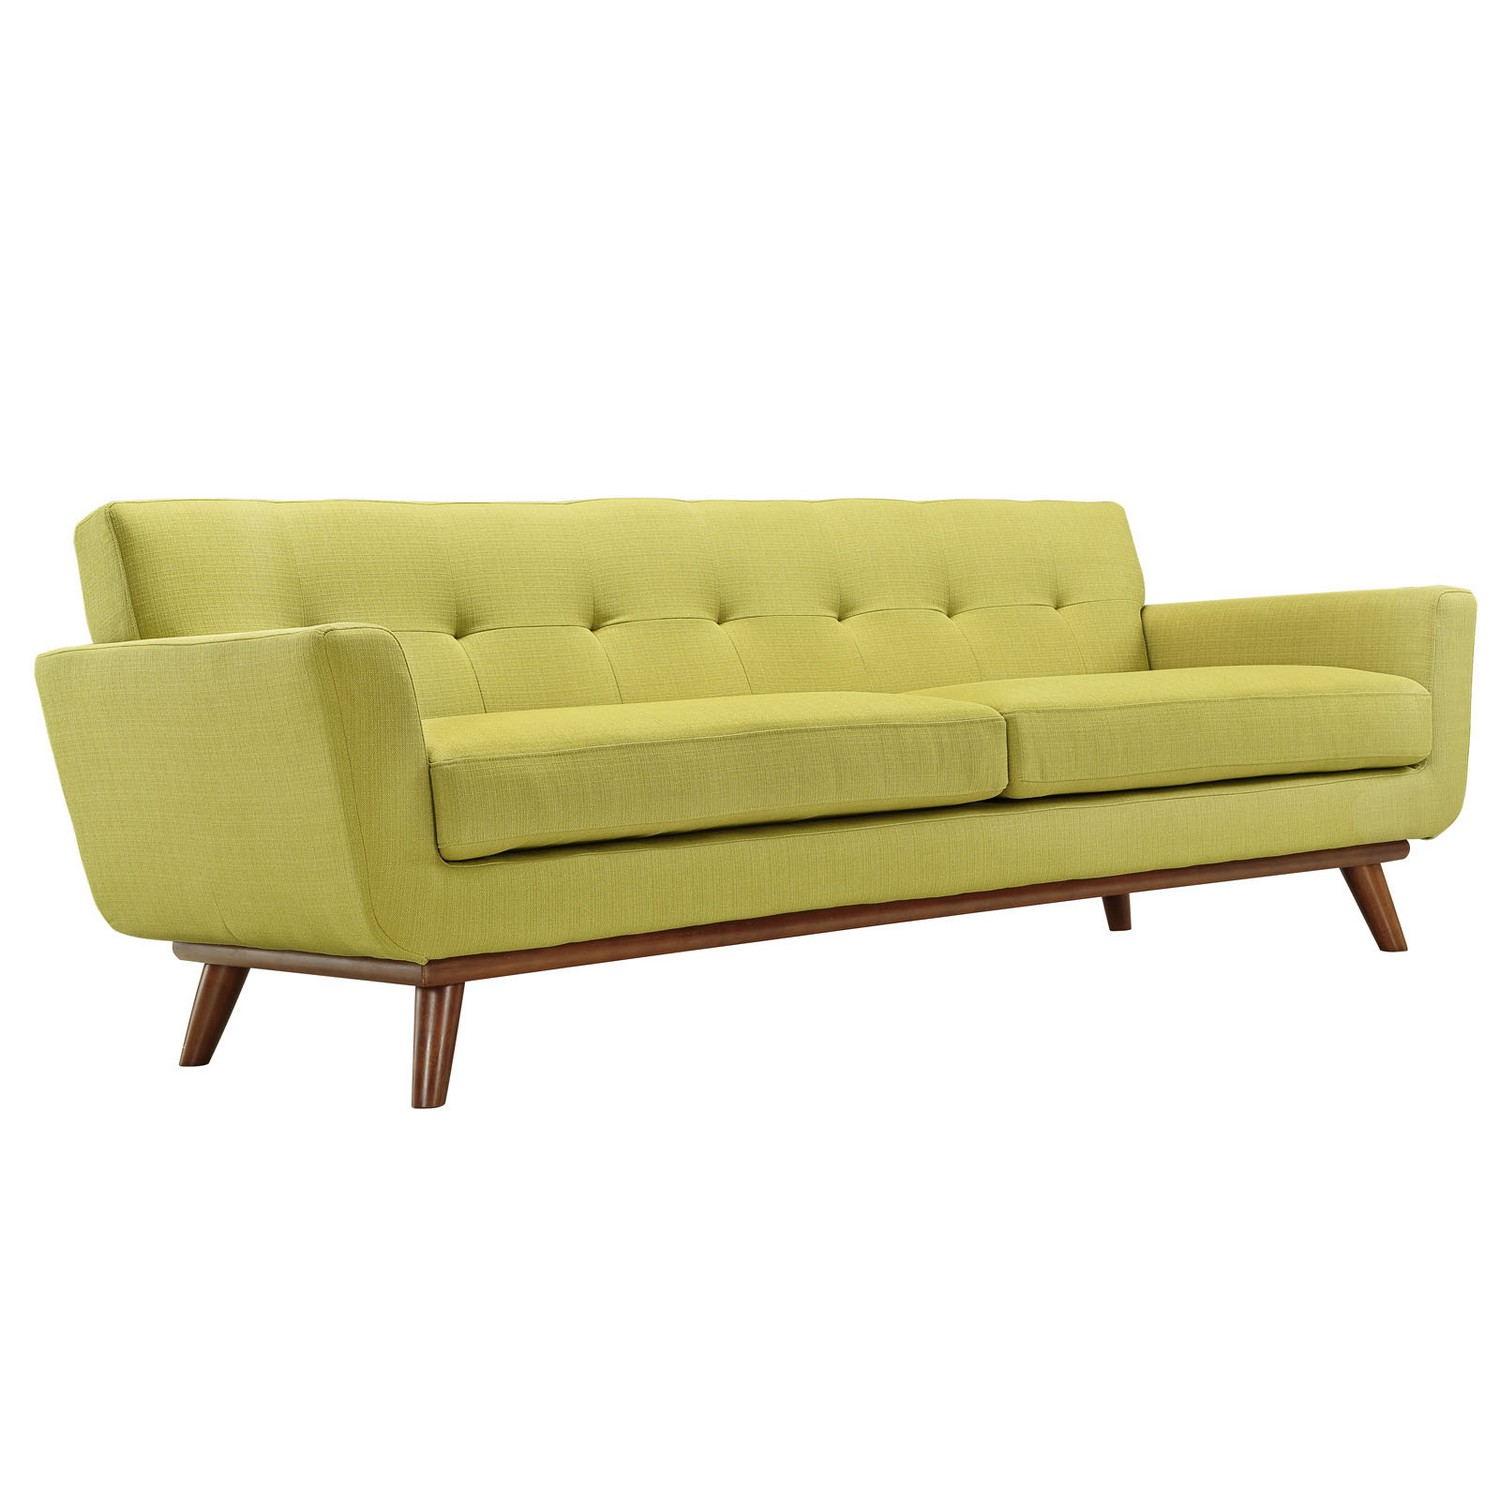 Modway Engage Armchairs and Sofa Set of 3 - Wheatgrass